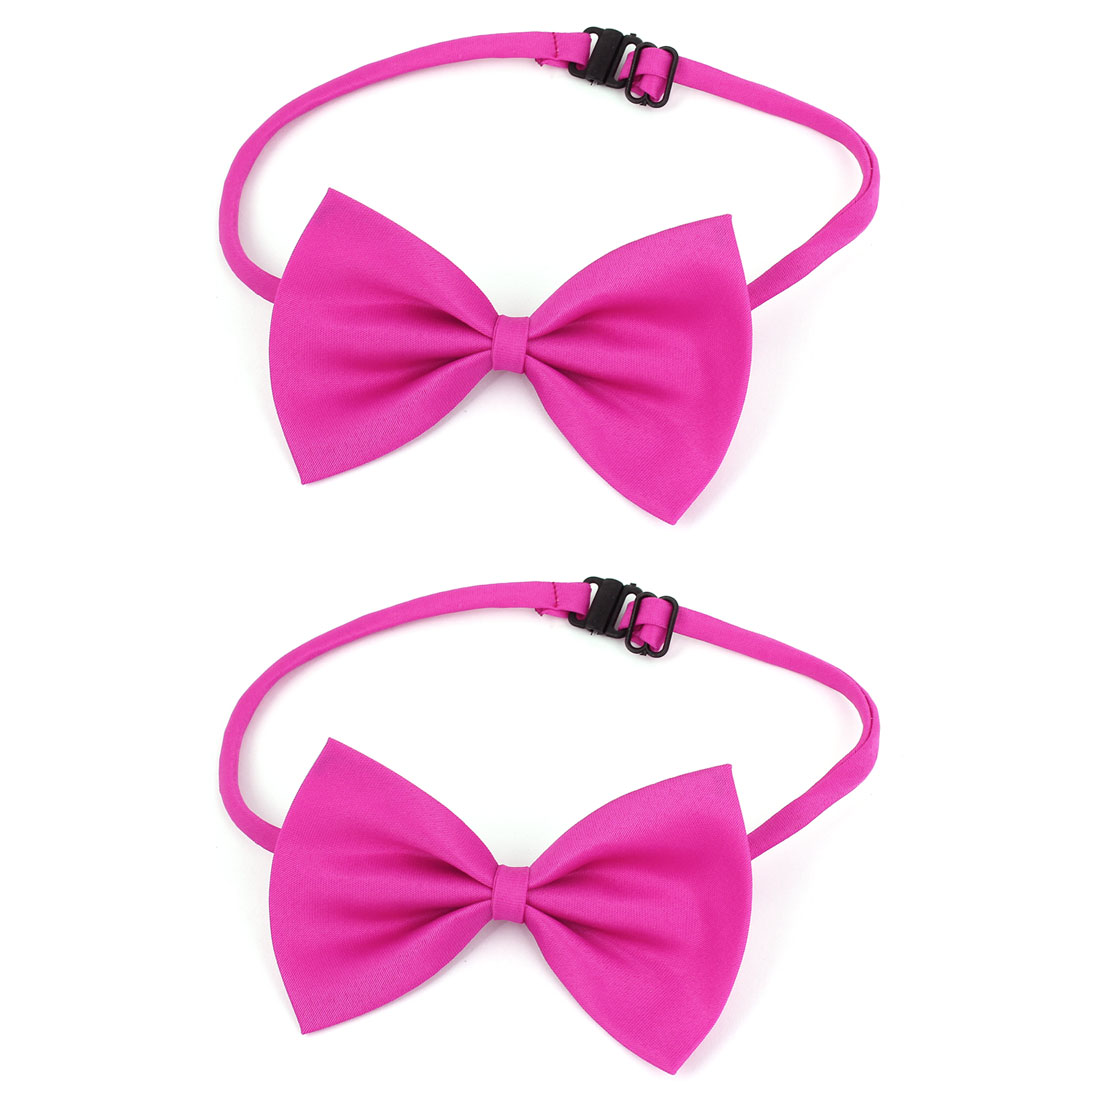 Unique Bargains Cat Dog Puppy Pet Adjustable Collar Clothes Bowtie Bow Tie Necktie Fuchsia 2 Pcs